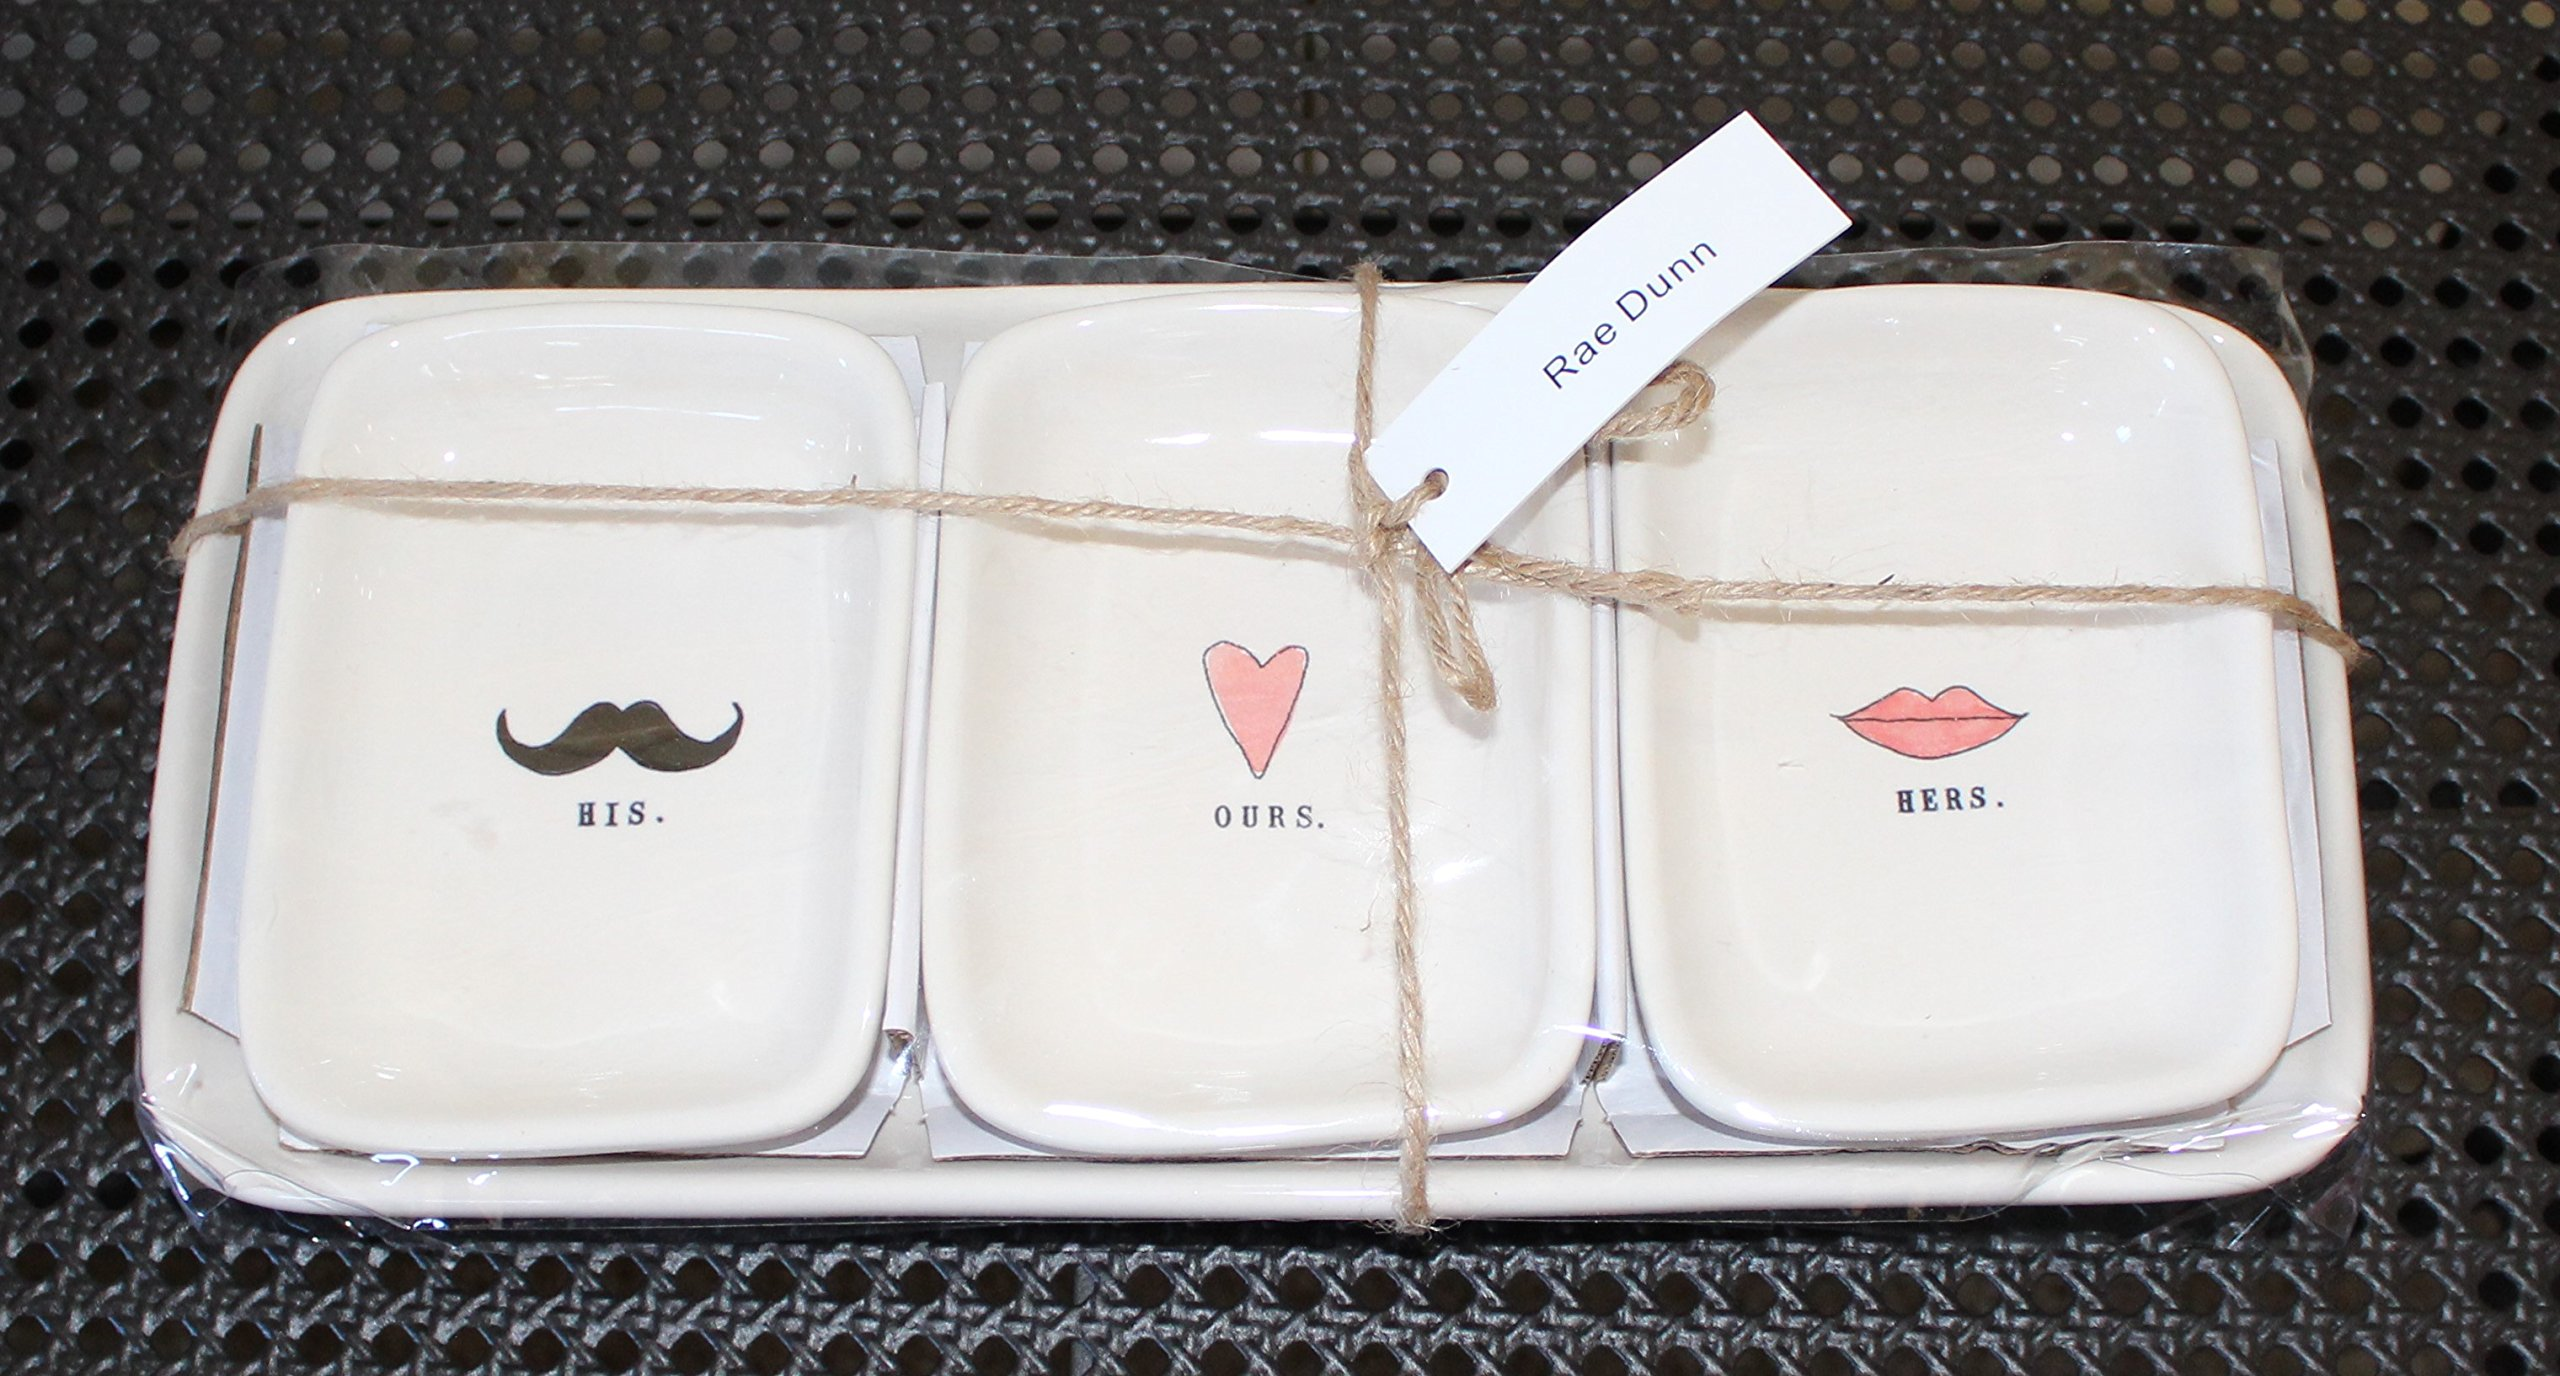 Rae Dunn HIS OURS HERS in typeset with Black Mustache, Pink Heart, and Red Lips 3 bowl Valentines Day Snack Dessert Organizer Set with Large Tray. By Magenta.